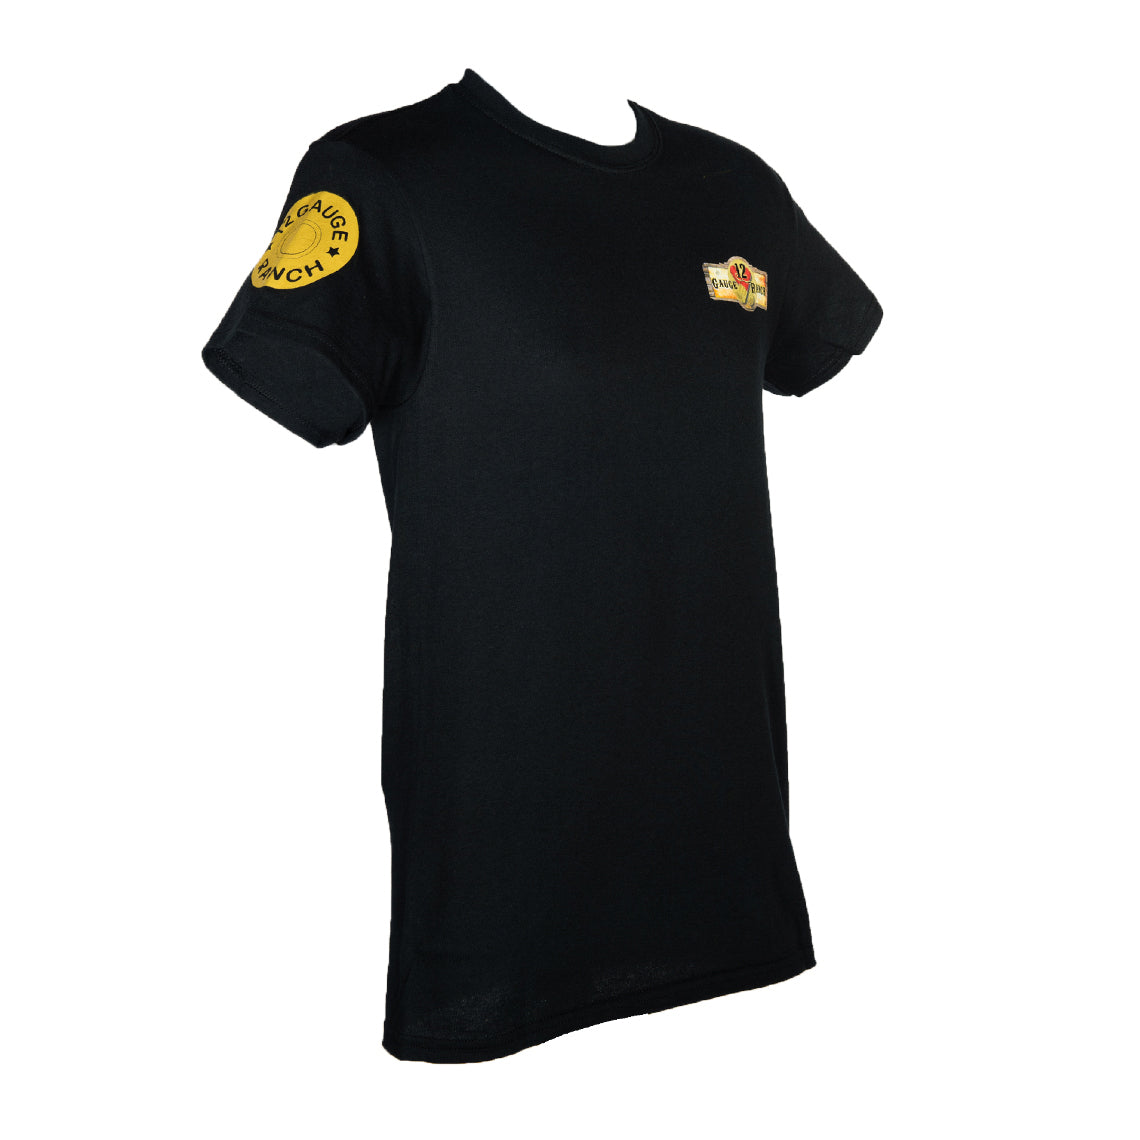 12 Gauge Ranch Black Short Sleeve Shirt (SSGBK101), Apparel, 12 Gauge Ranch, 12 Gauge Ranch Ranch  12 Gauge Ranch